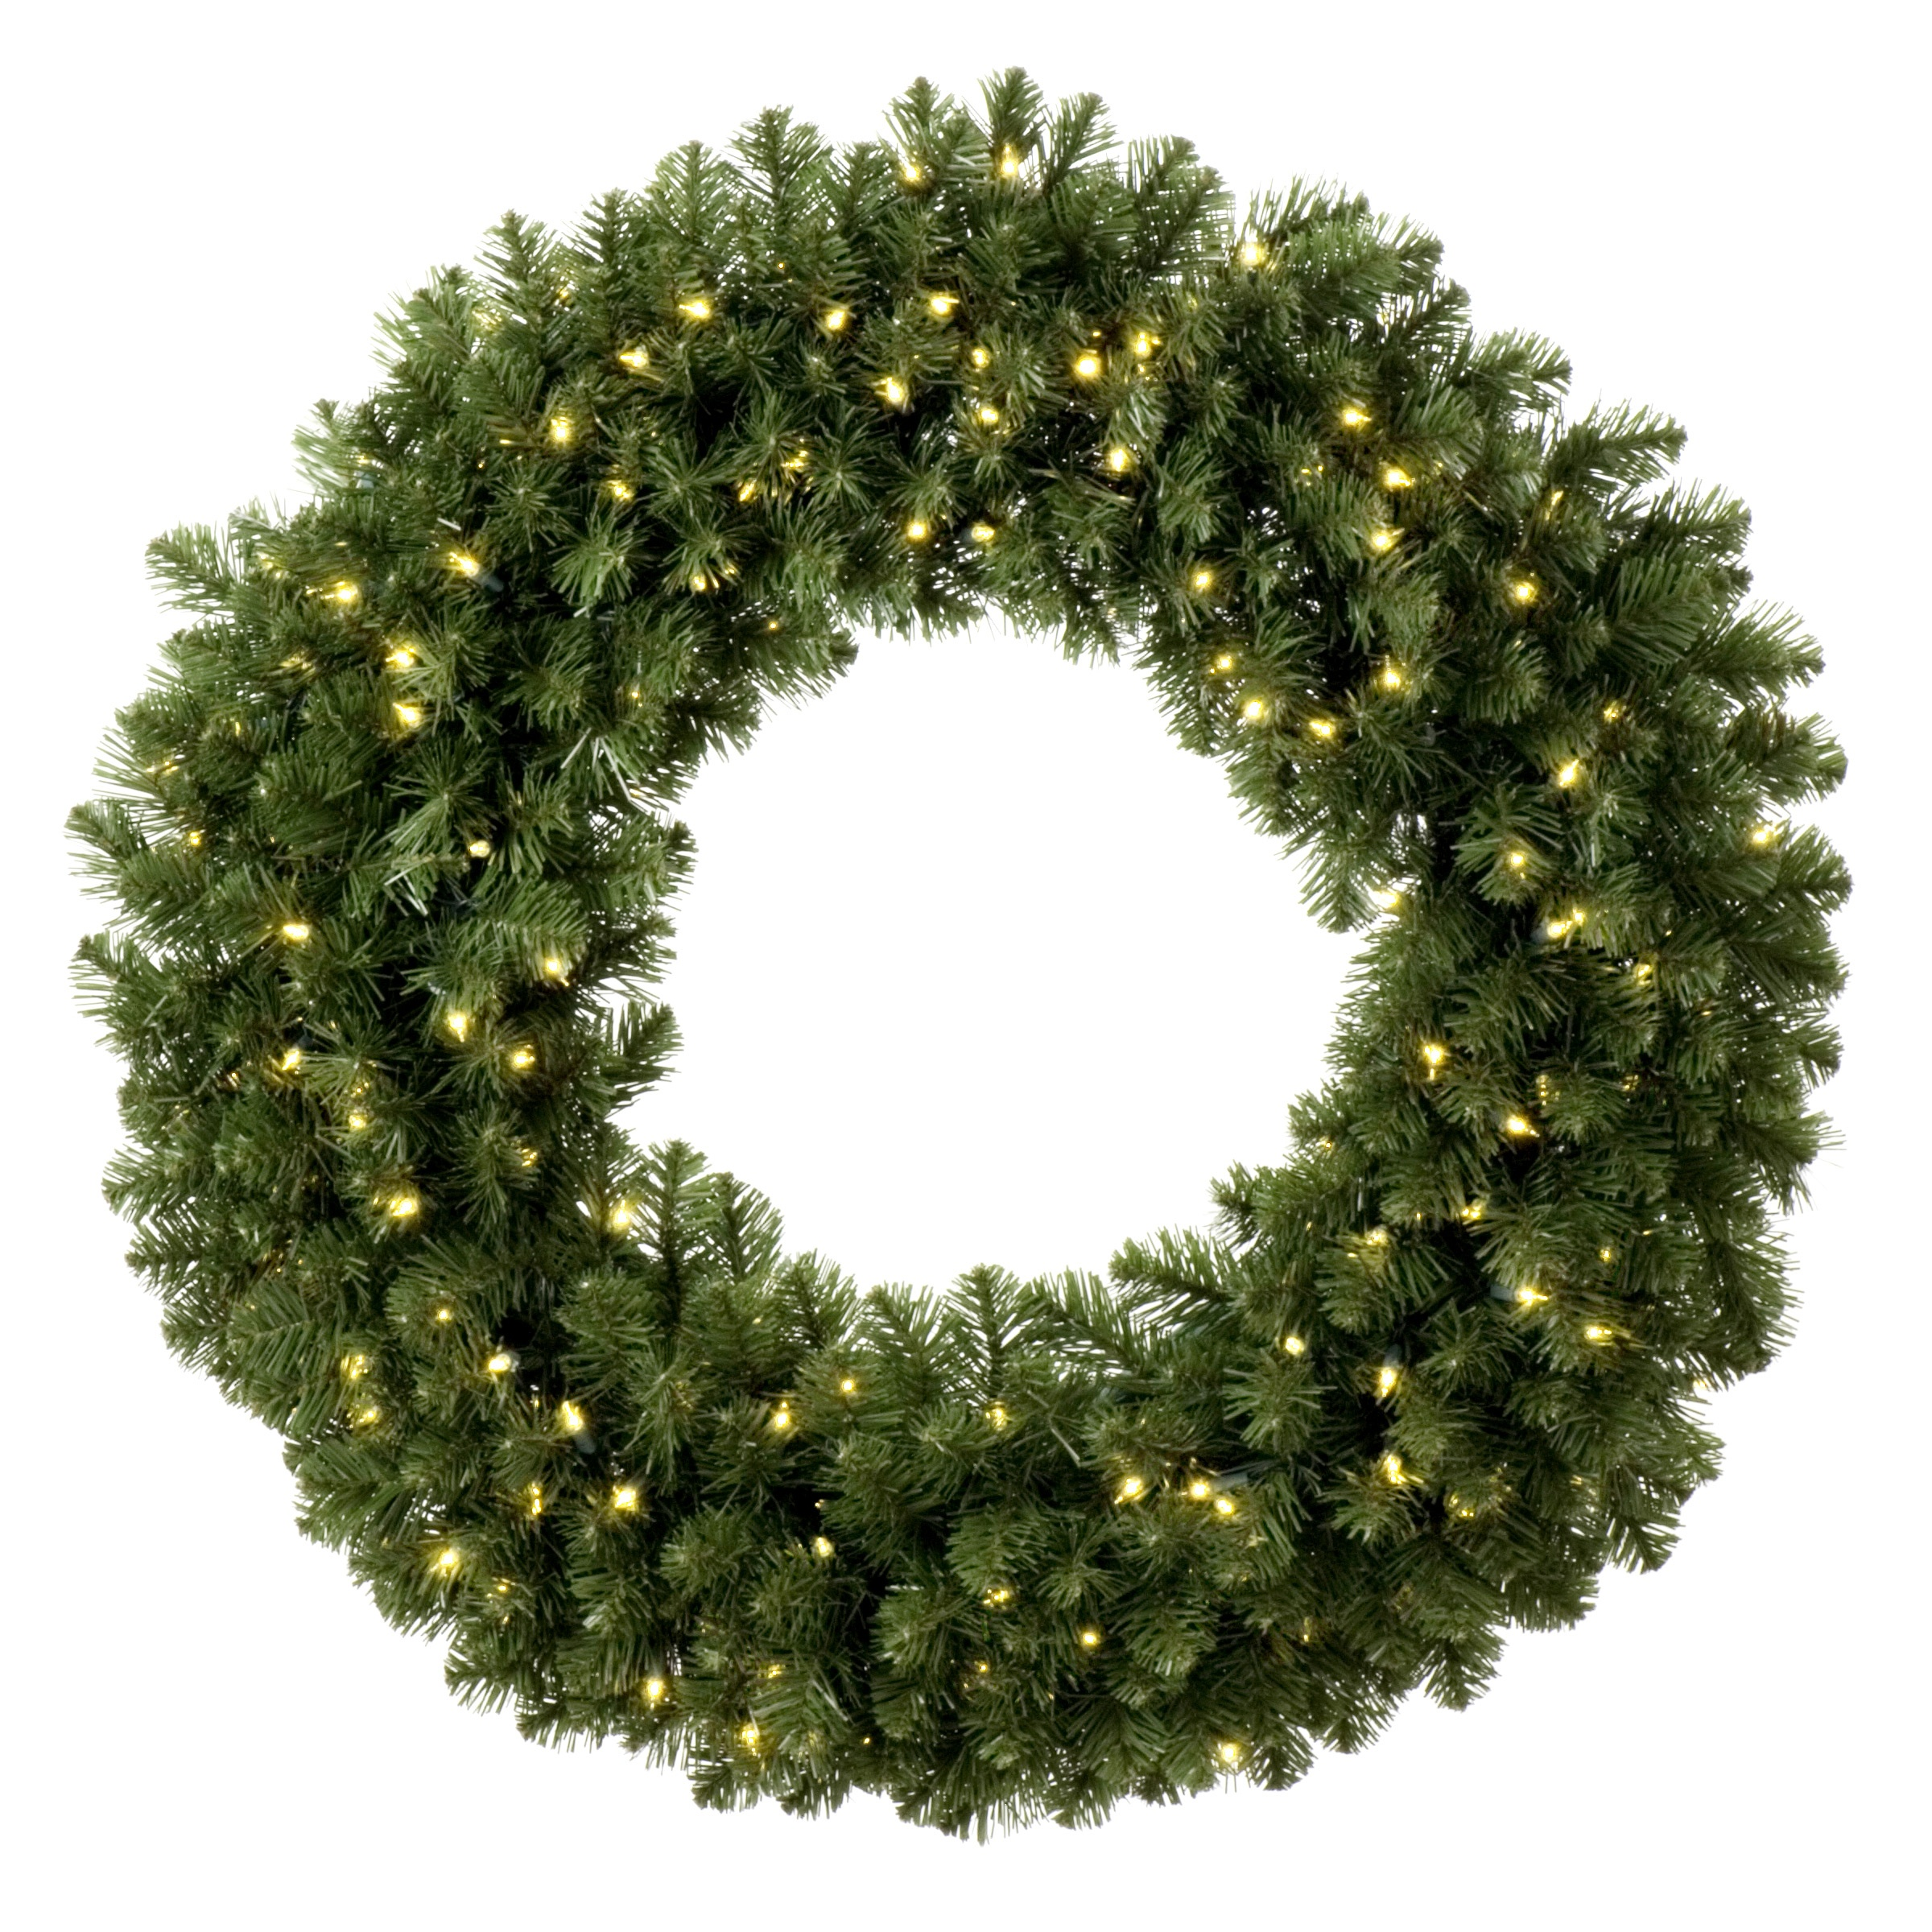 Prelit Christmas Wreath.Sequoia Fir Prelit Commercial Led Christmas Wreath Warm White Lights